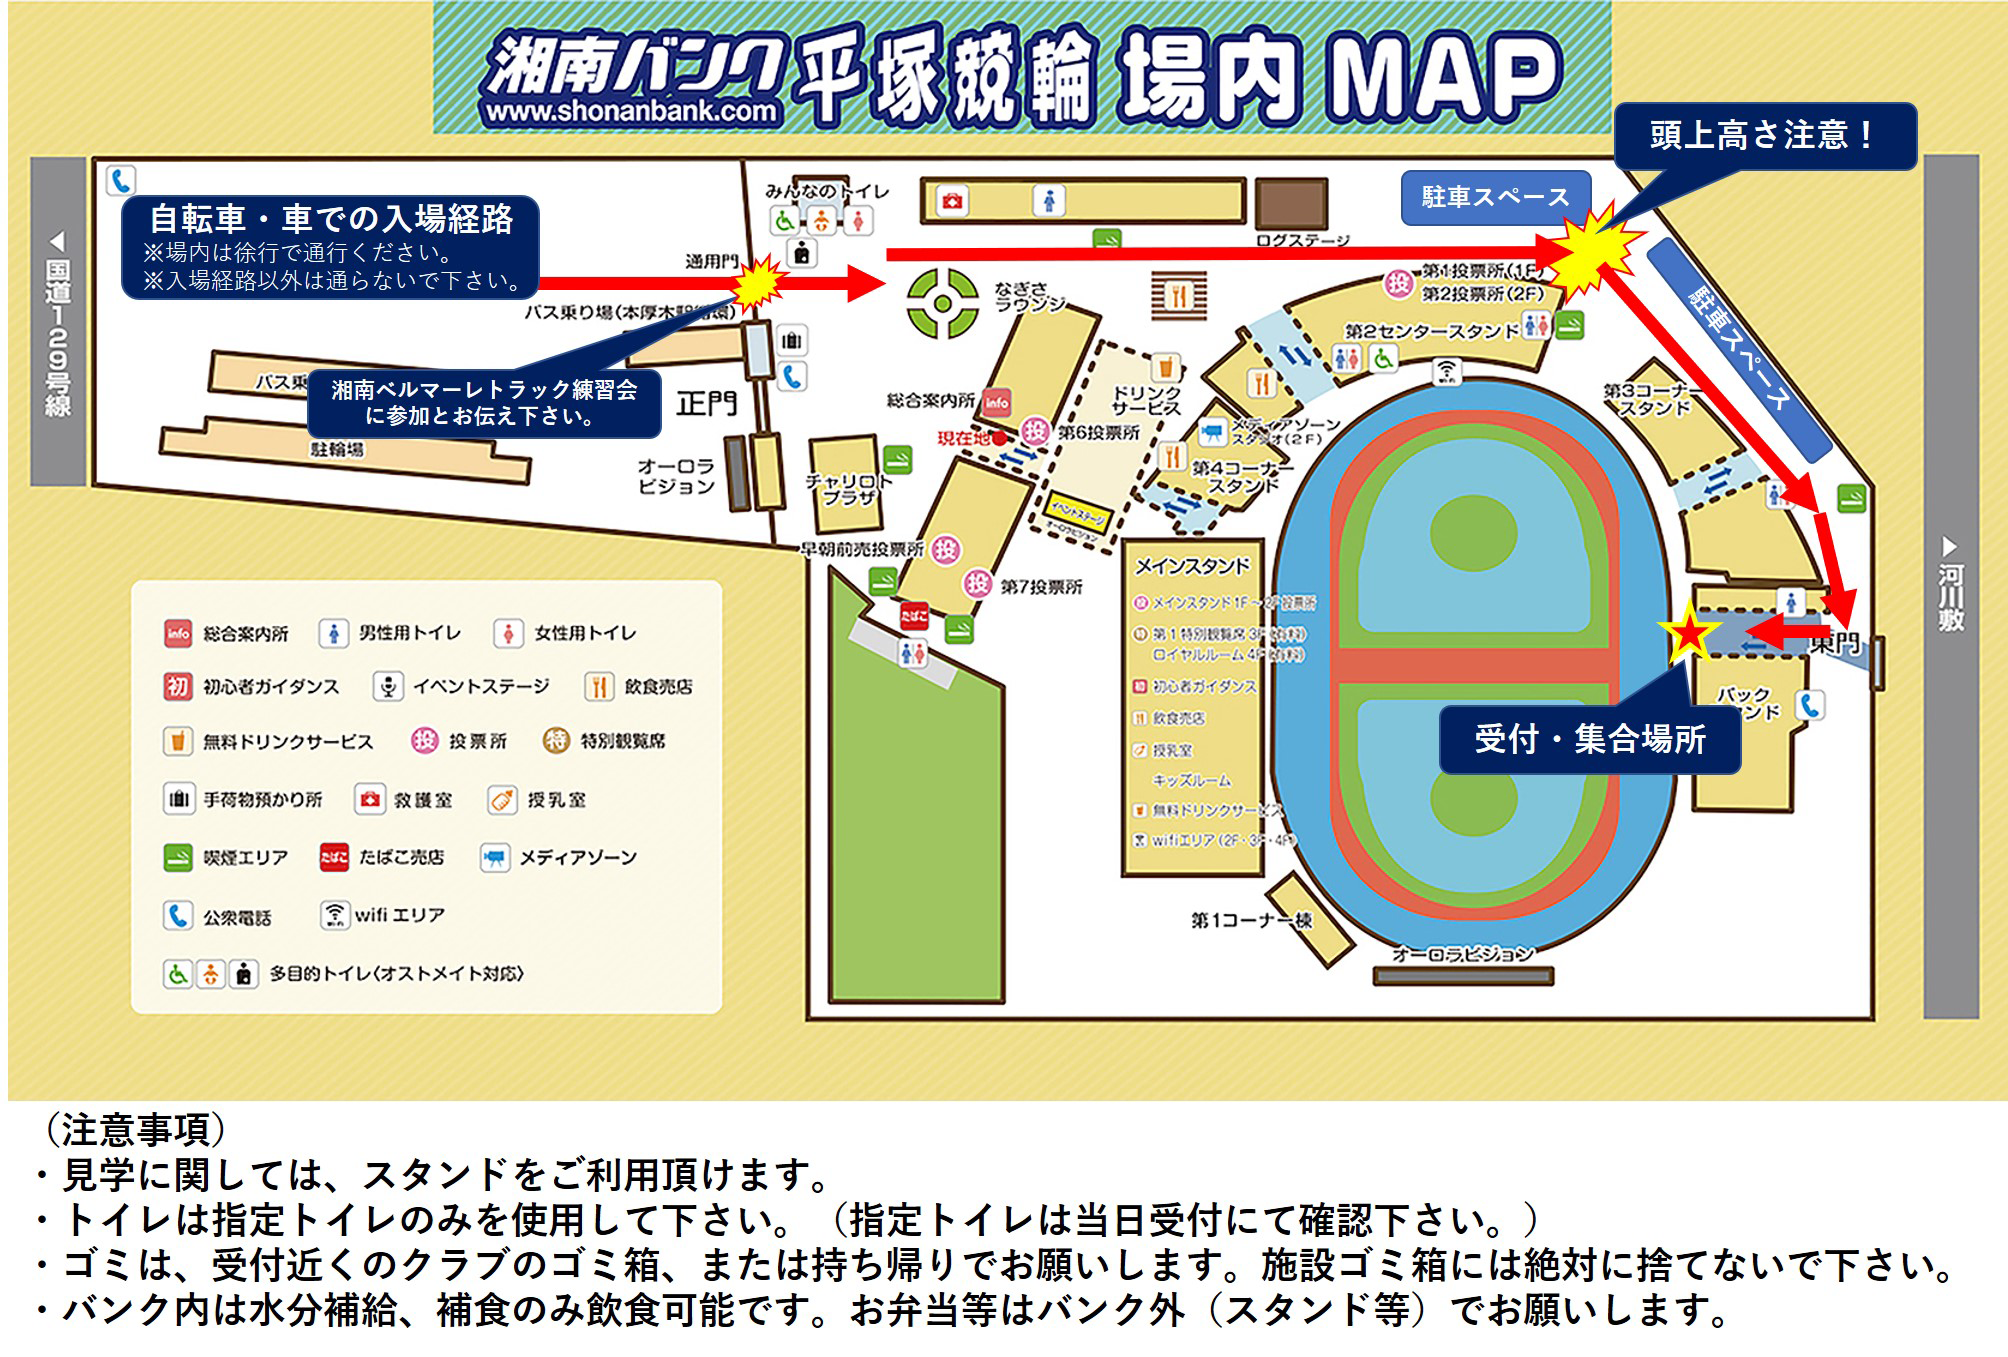 http://www.bellmare.or.jp/cycleroad/news/photo/cr210831_01_02.png